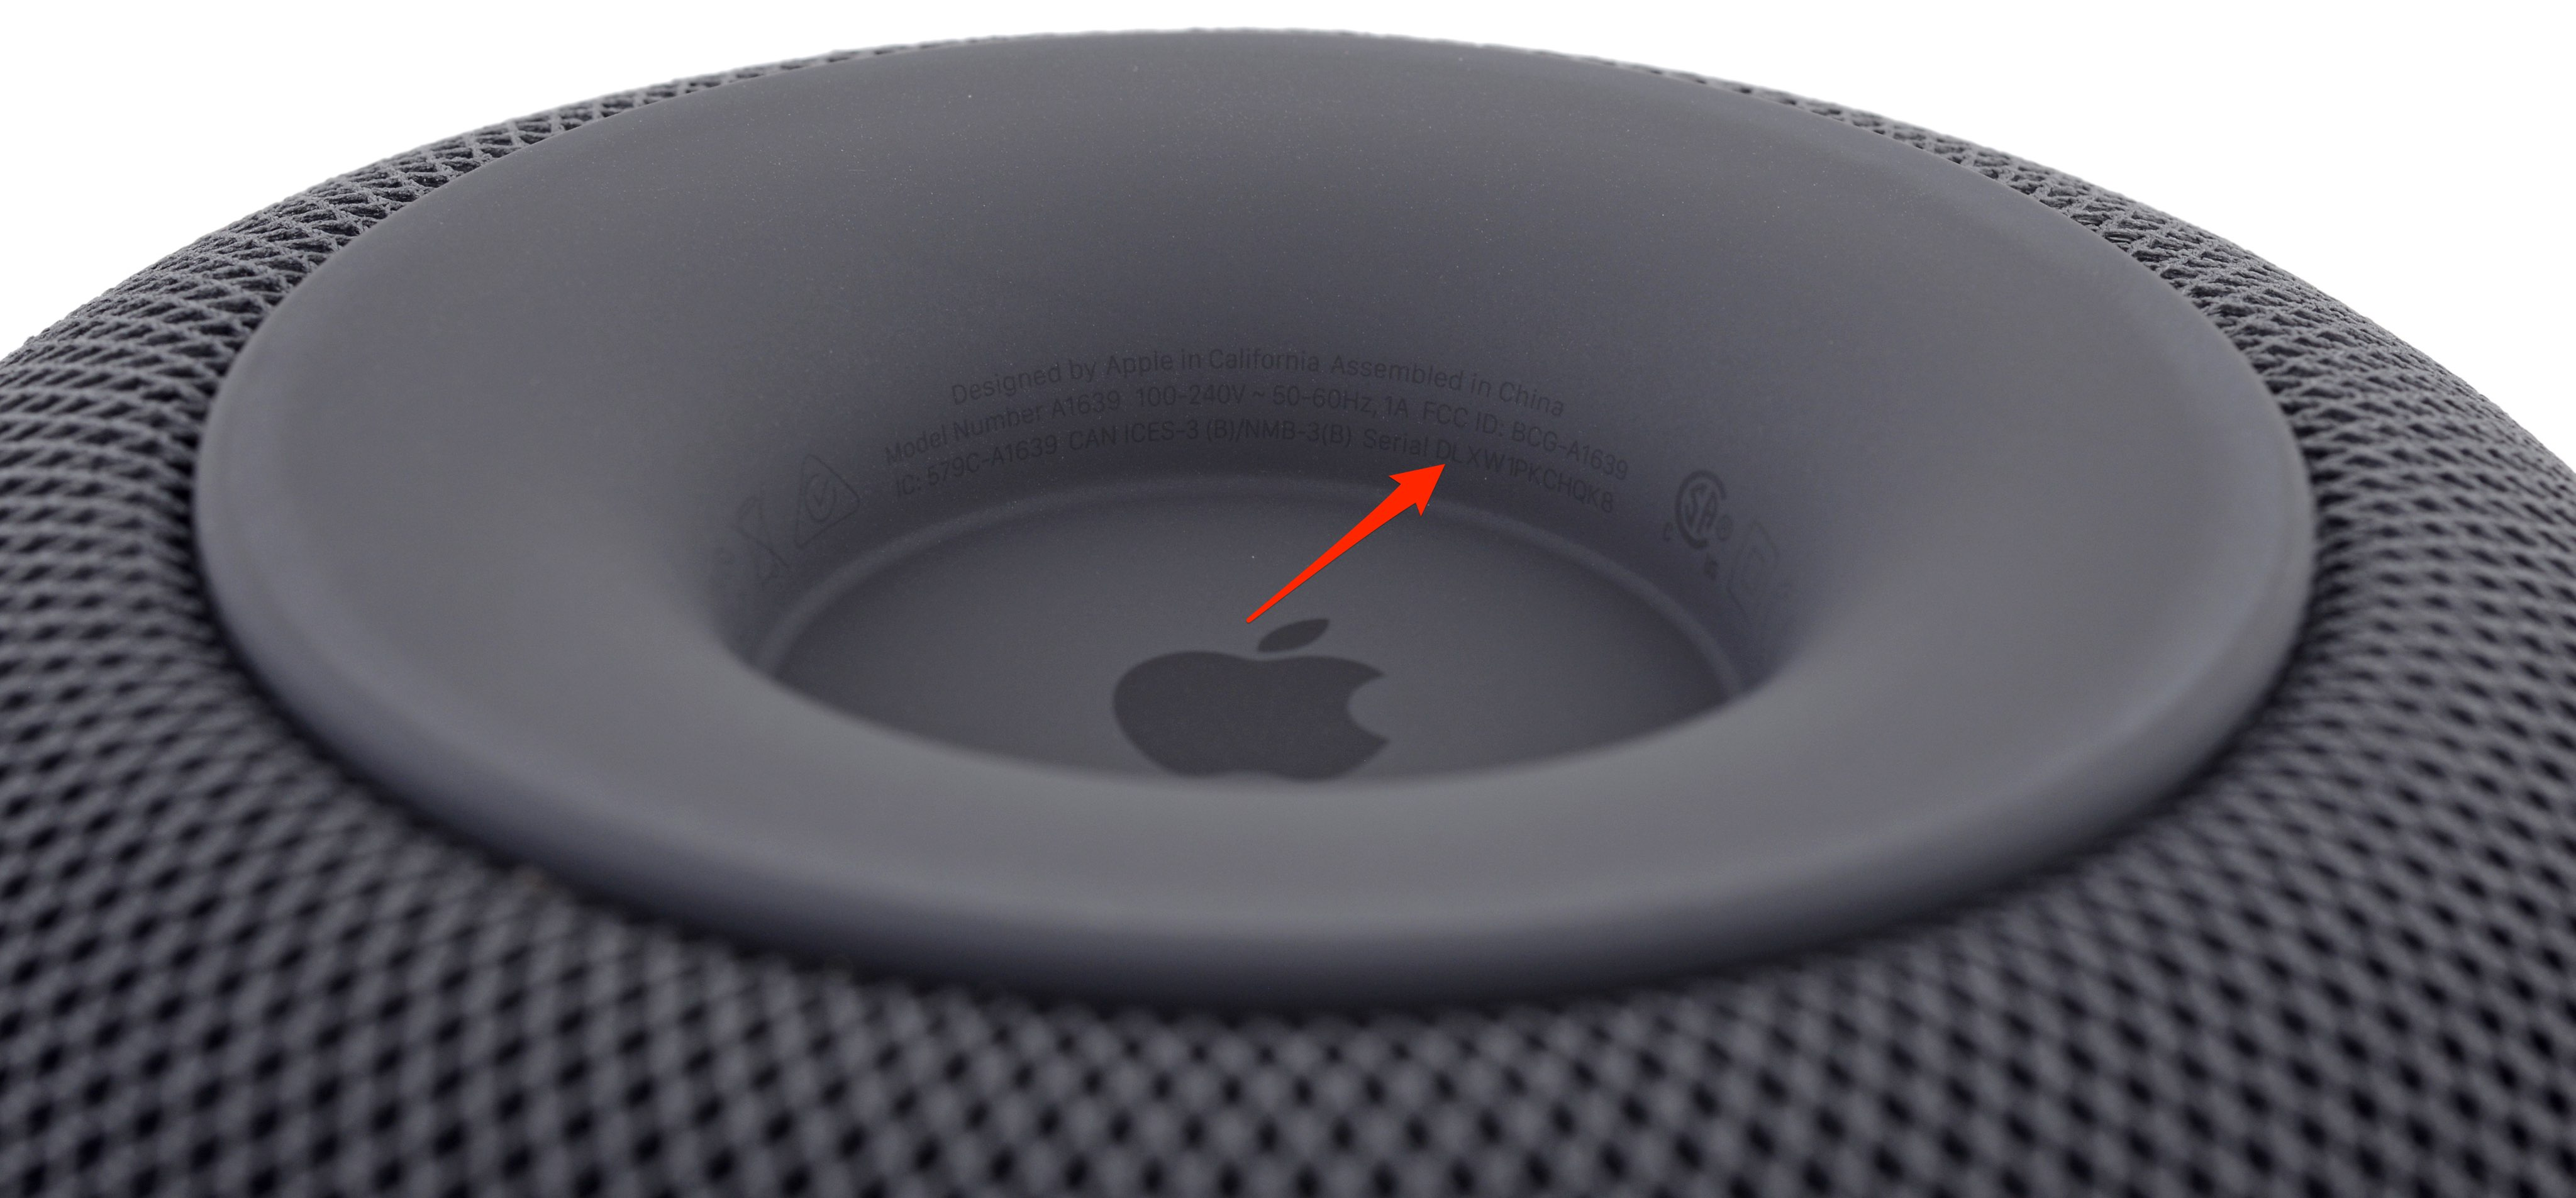 homepod serial number on homepod